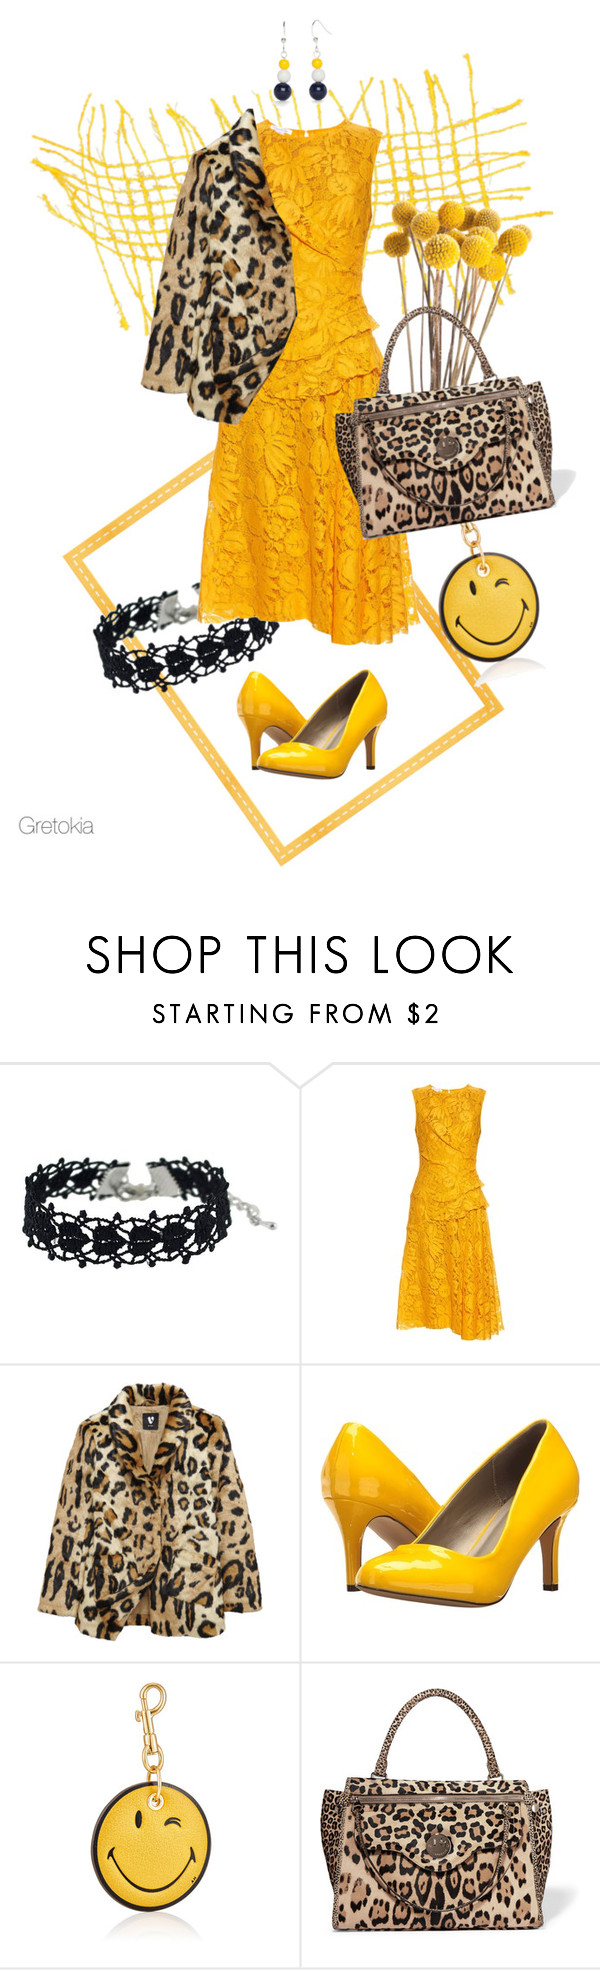 """Sunny"" by gretokia ❤ liked on Polyvore featuring Oscar de la Renta, Michael Antonio, Anya Hindmarch, Hill & Friends, Kim Rogers, yellow, sun, dress, lace and sunny"